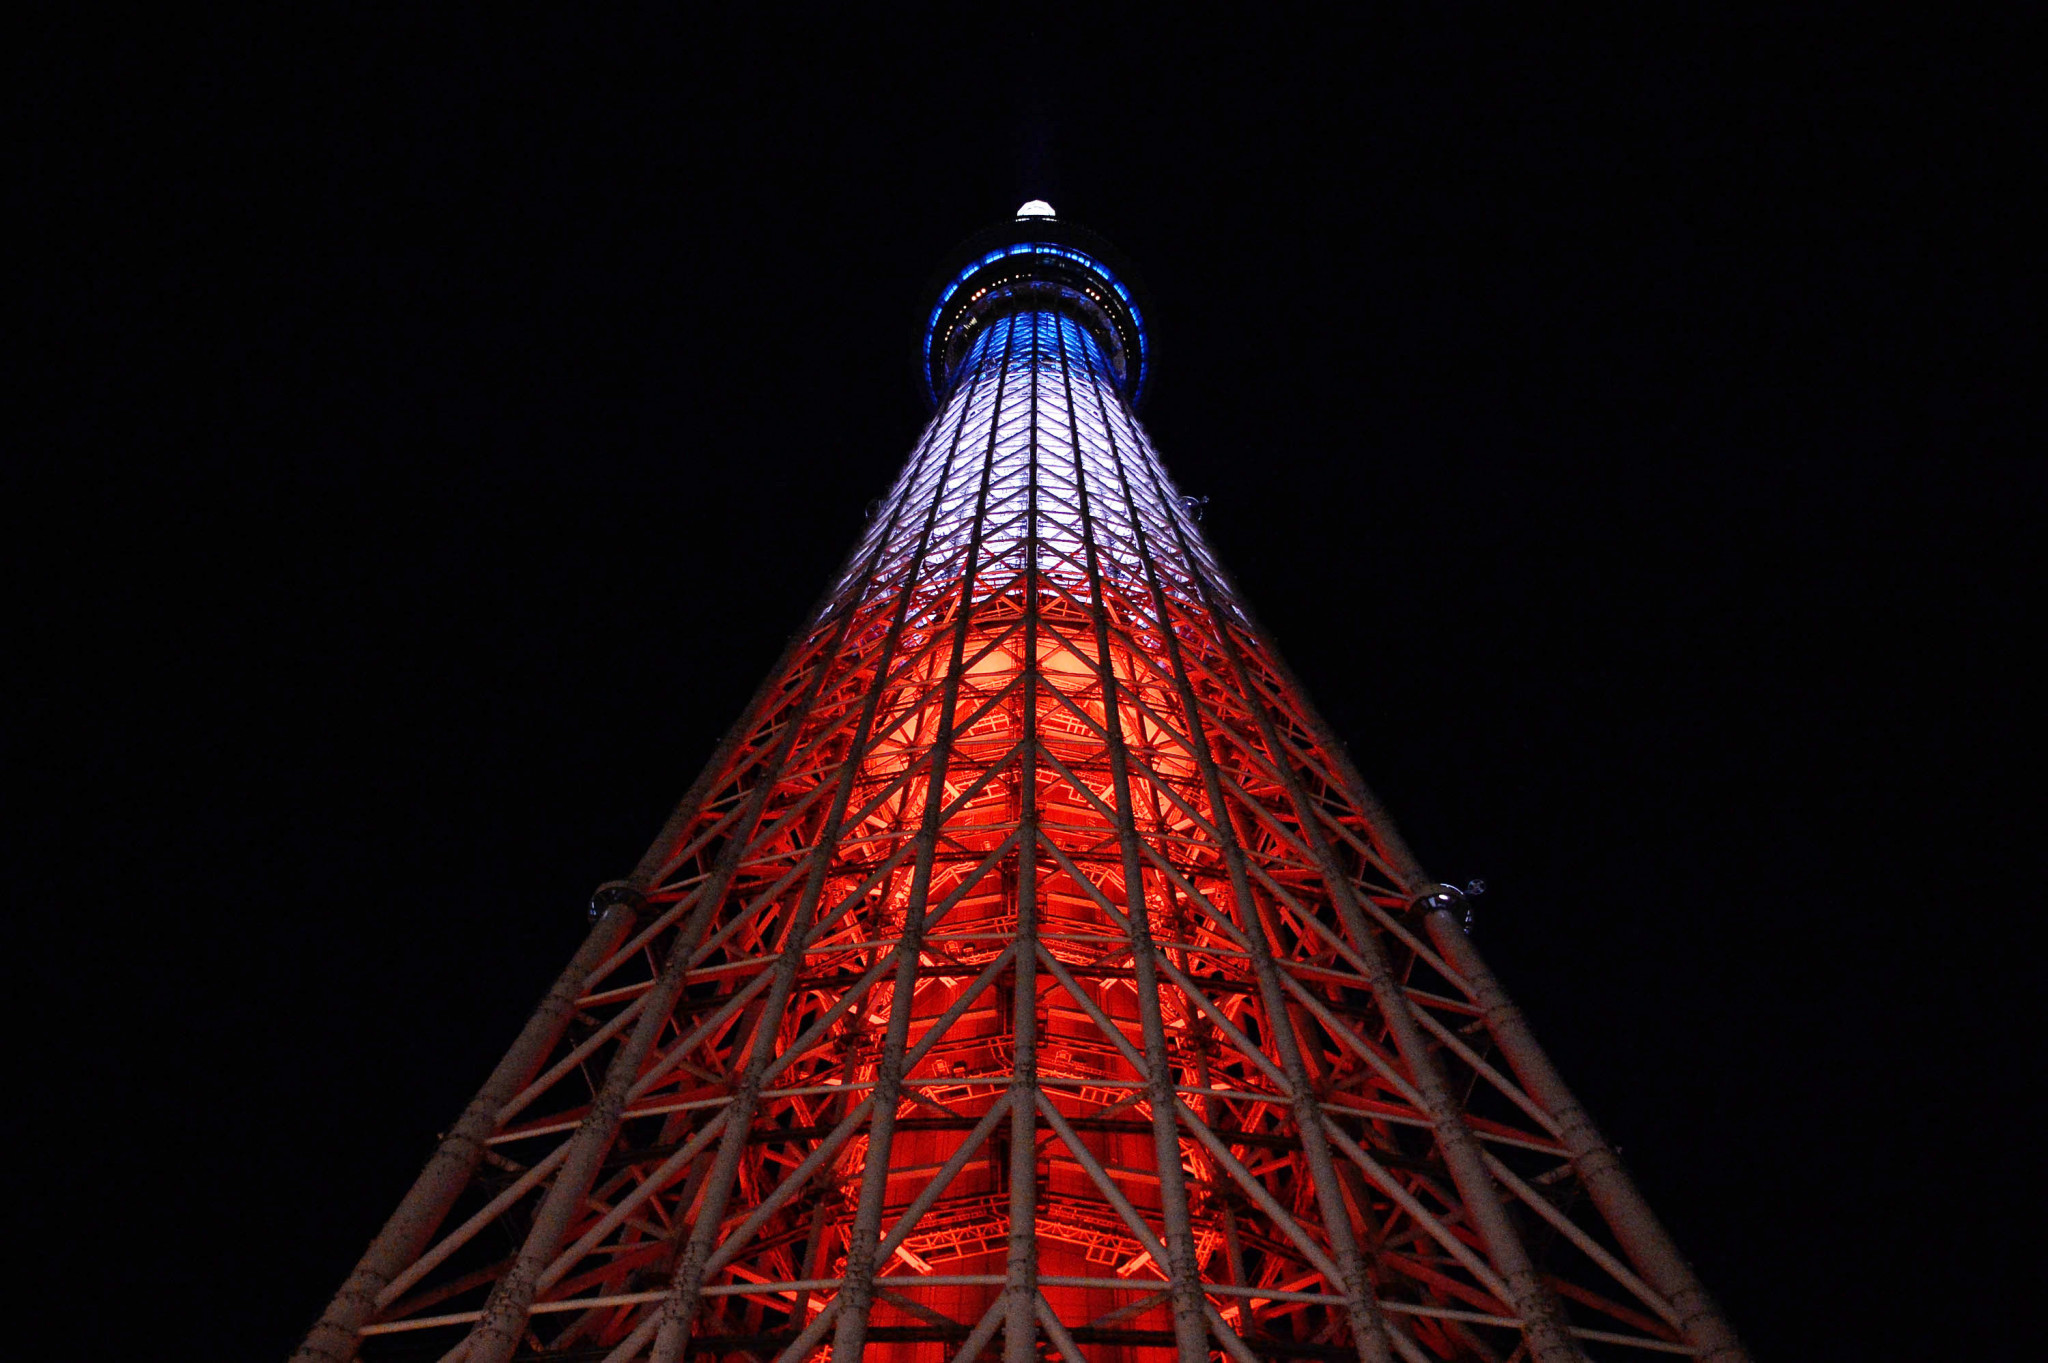 The Tokyo leg of the Olympic Torch Relay will include a visit to the Skytree observation deck ©Getty Images